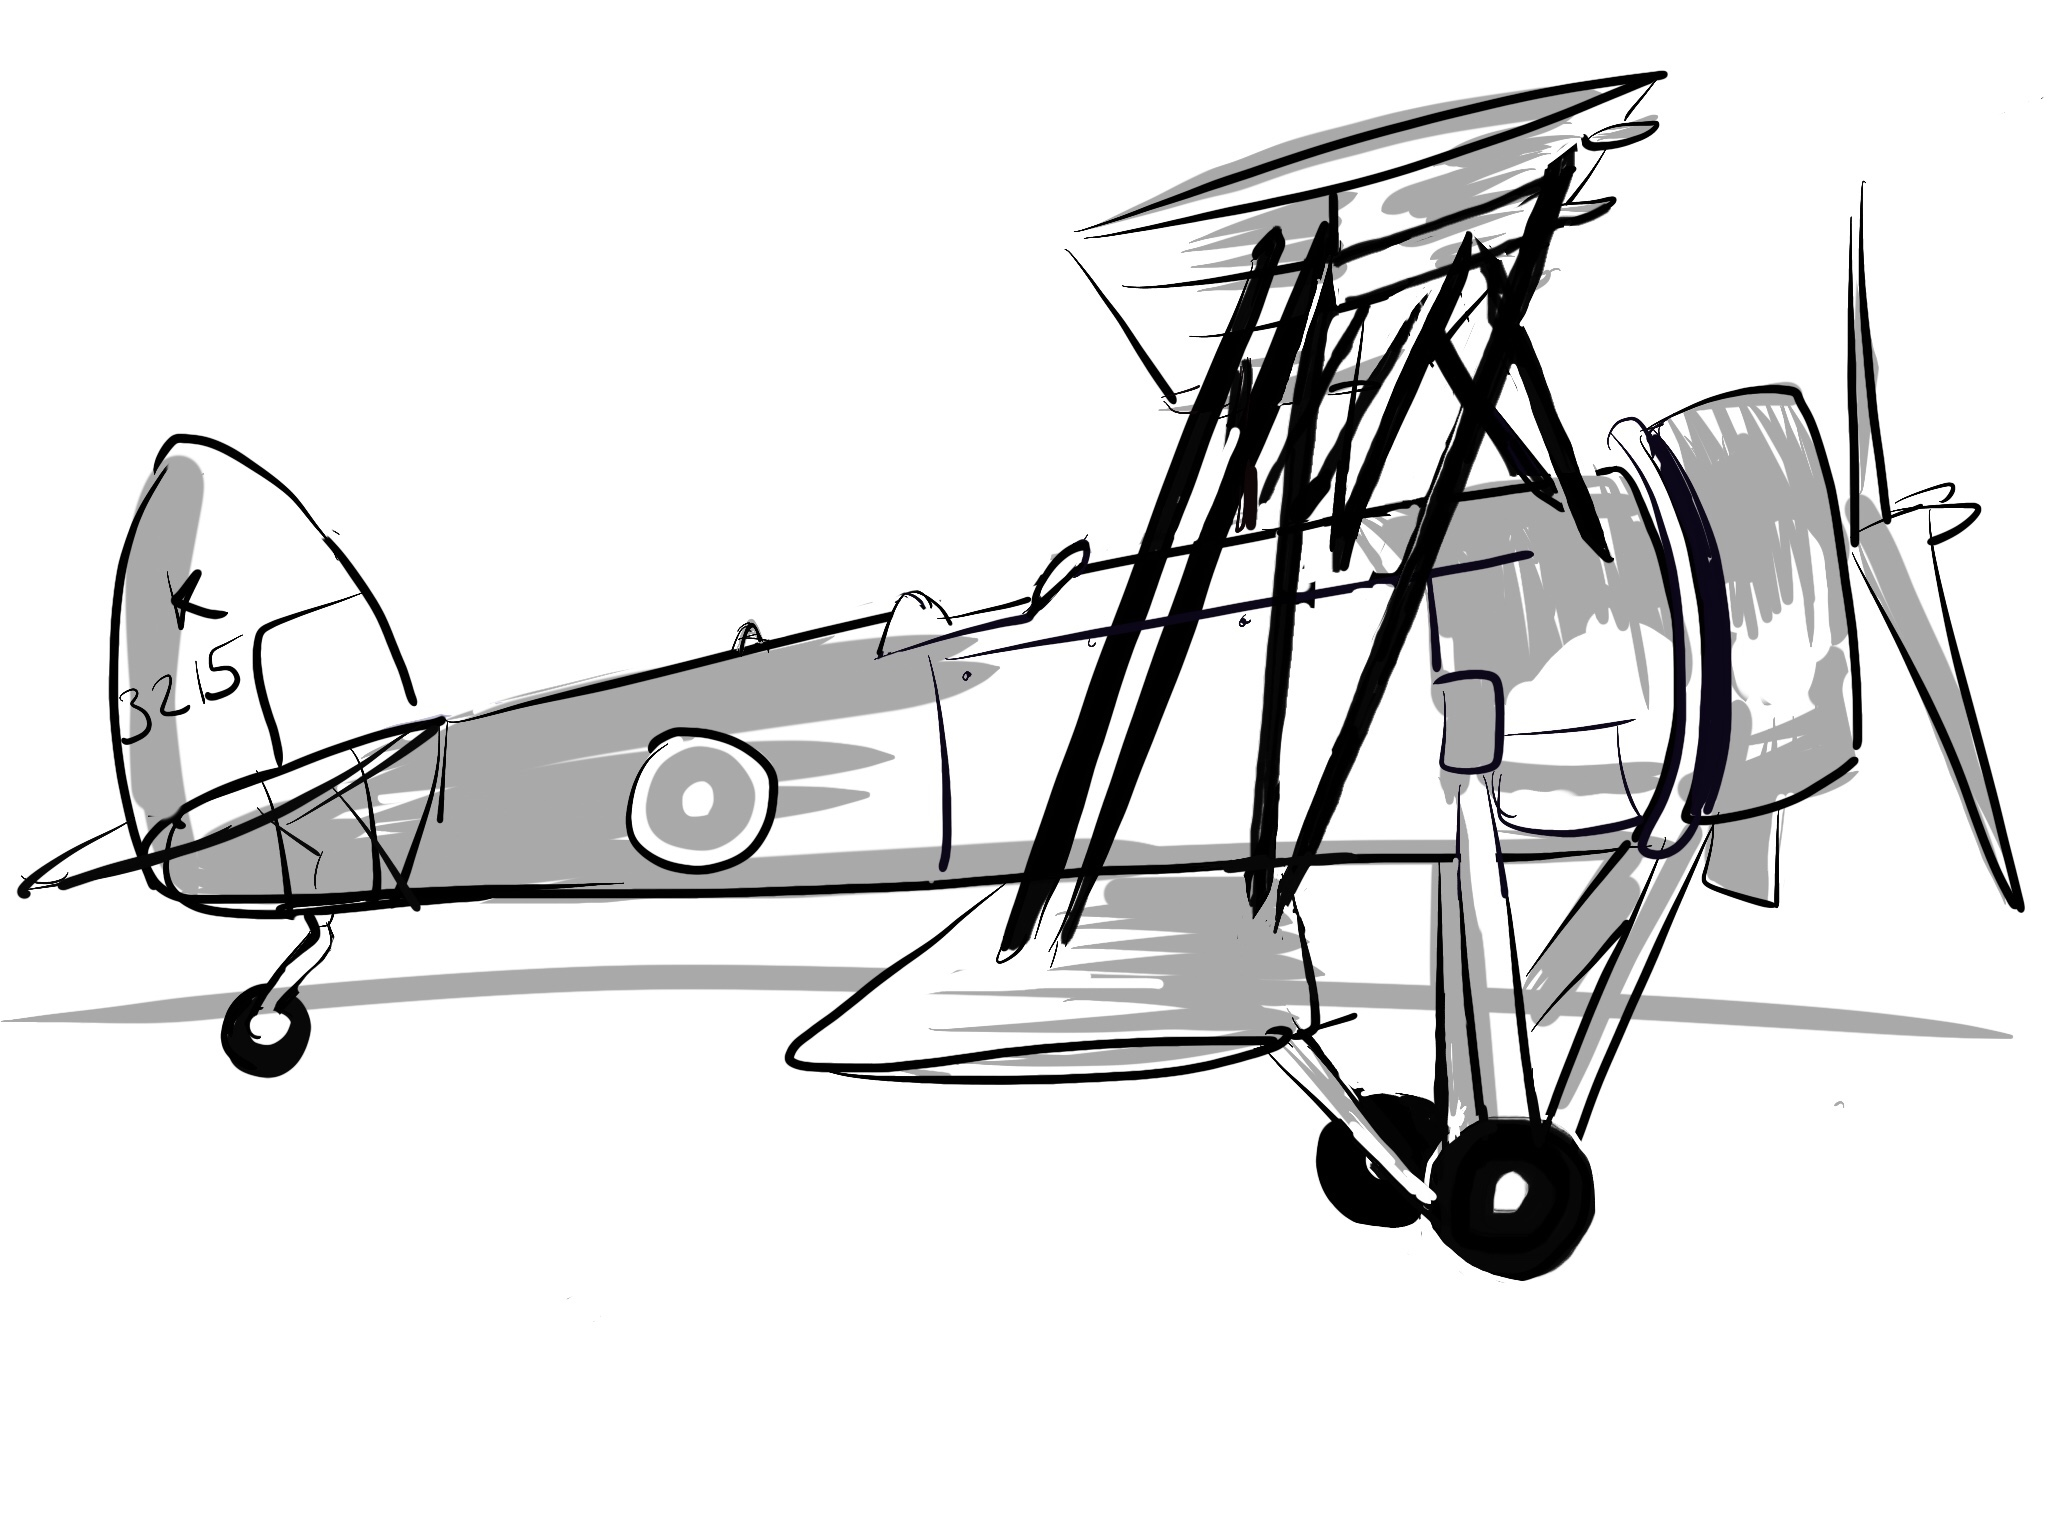 2018 digital illo biplane copy.jpg